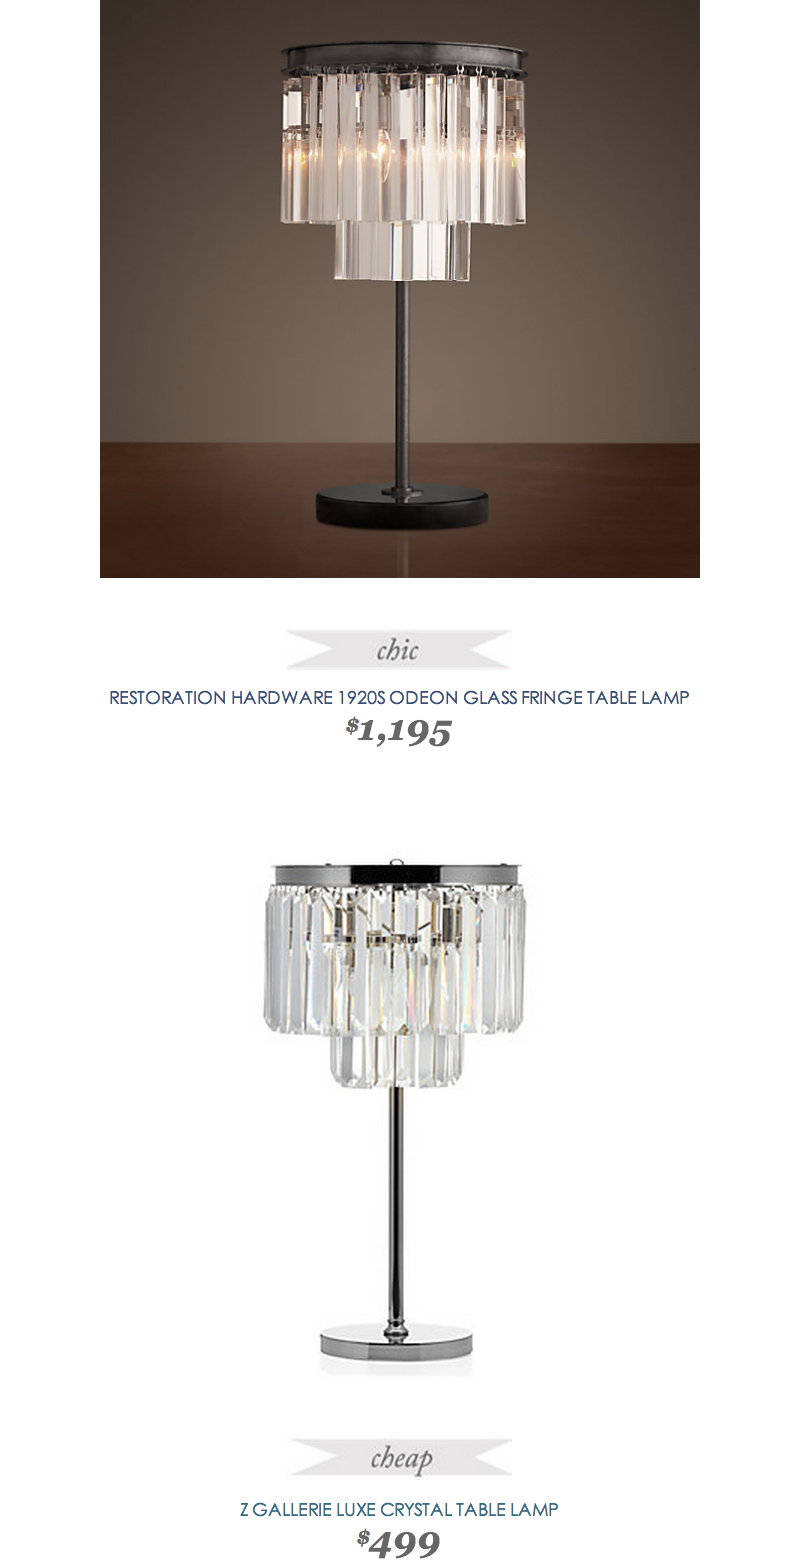 Restoration Hardware 1920s Odeon Glass Fringe Table Lamp Lighting